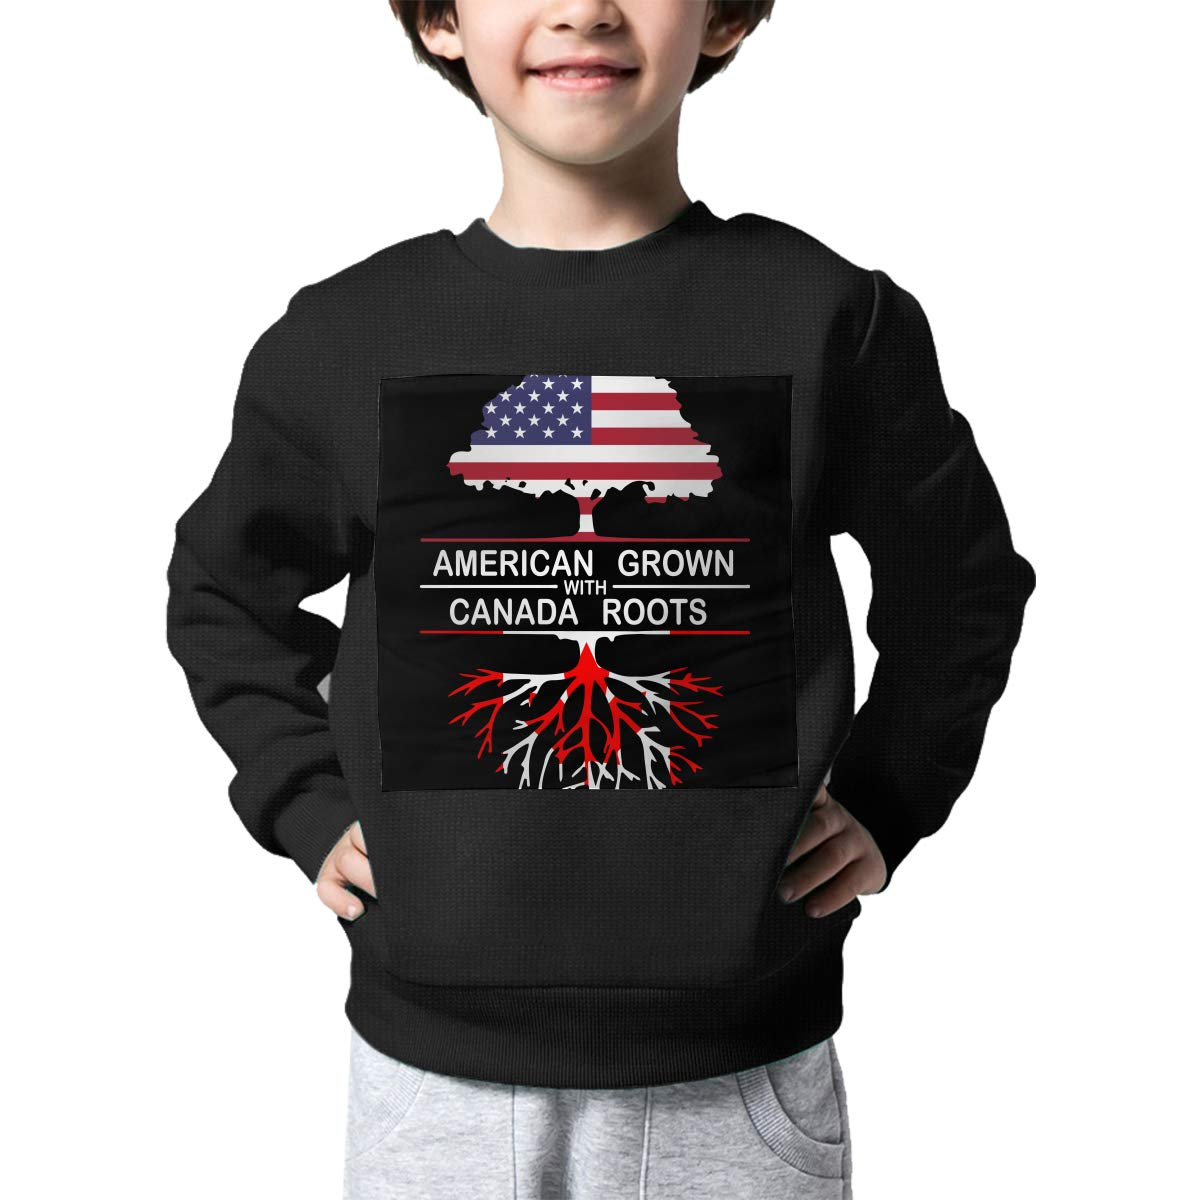 NJKM5MJ Boys Girls American Grown with Canada Roots-1 Lovely Sweaters Soft Warm Kids Sweater